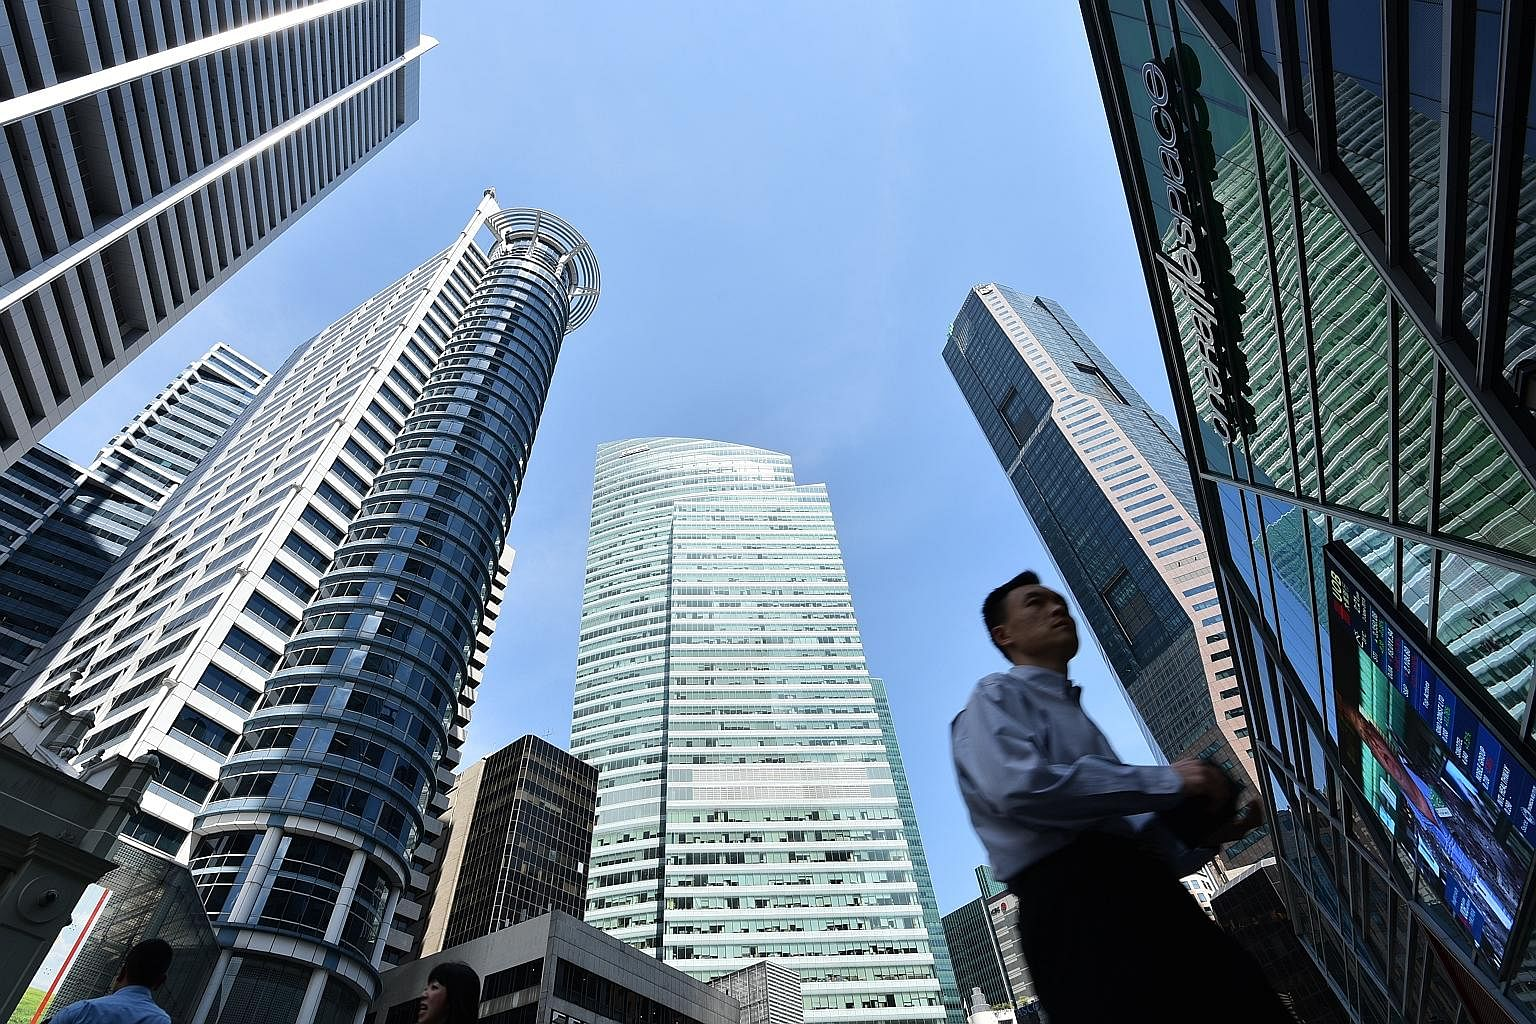 Transforming Singapore into a two-way hub, where there are inflows and outflows of capital, technology and people, will allow the country to thrive in a global economy that is getting tougher.